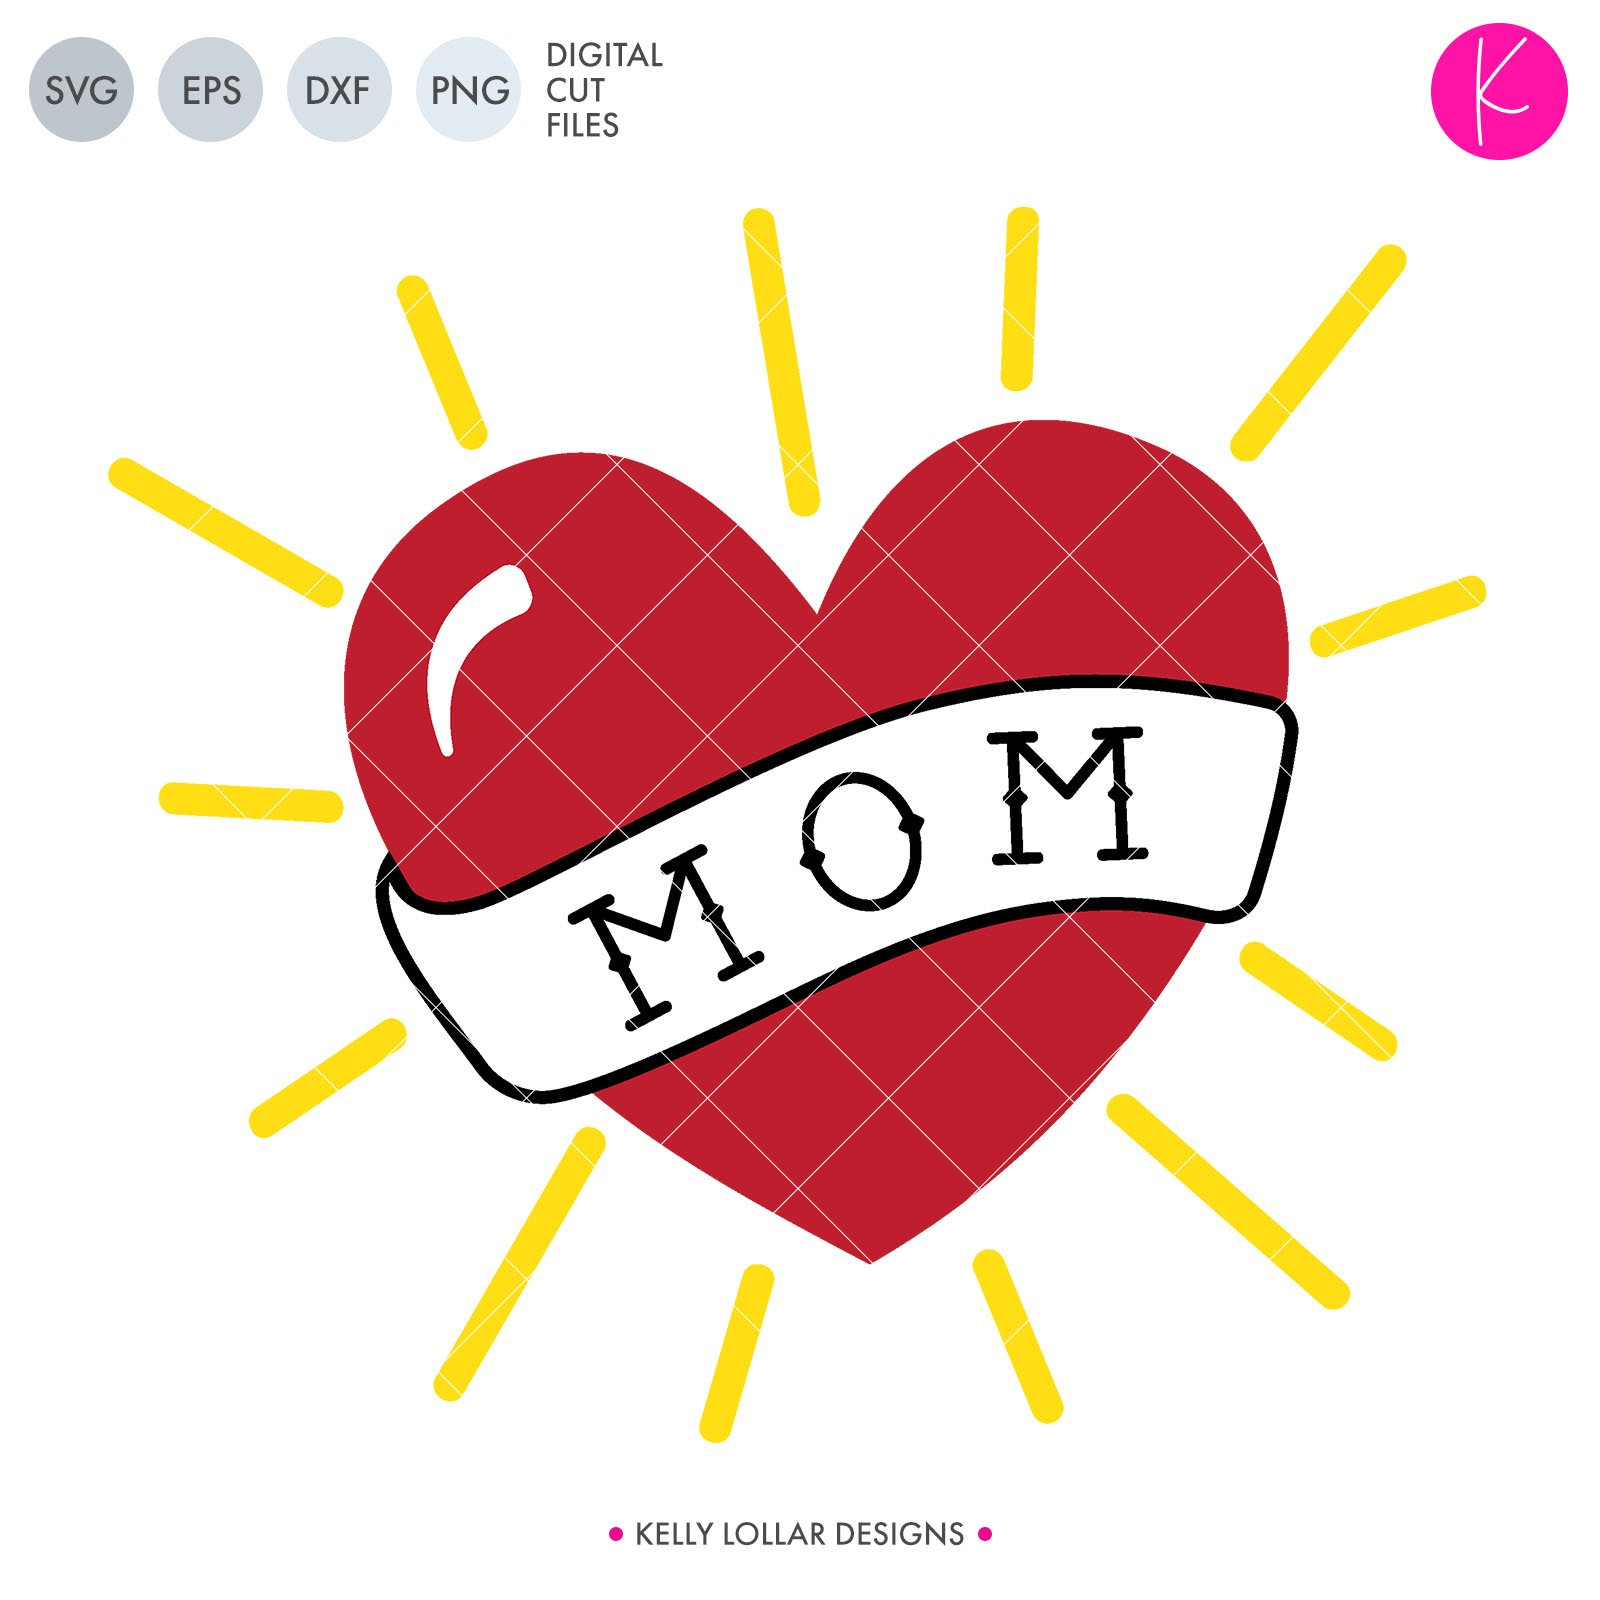 1 heart mom tattoo clipart image transparent download Mom Heart Tattoo | SVG DXF EPS PNG Cut Files image transparent download